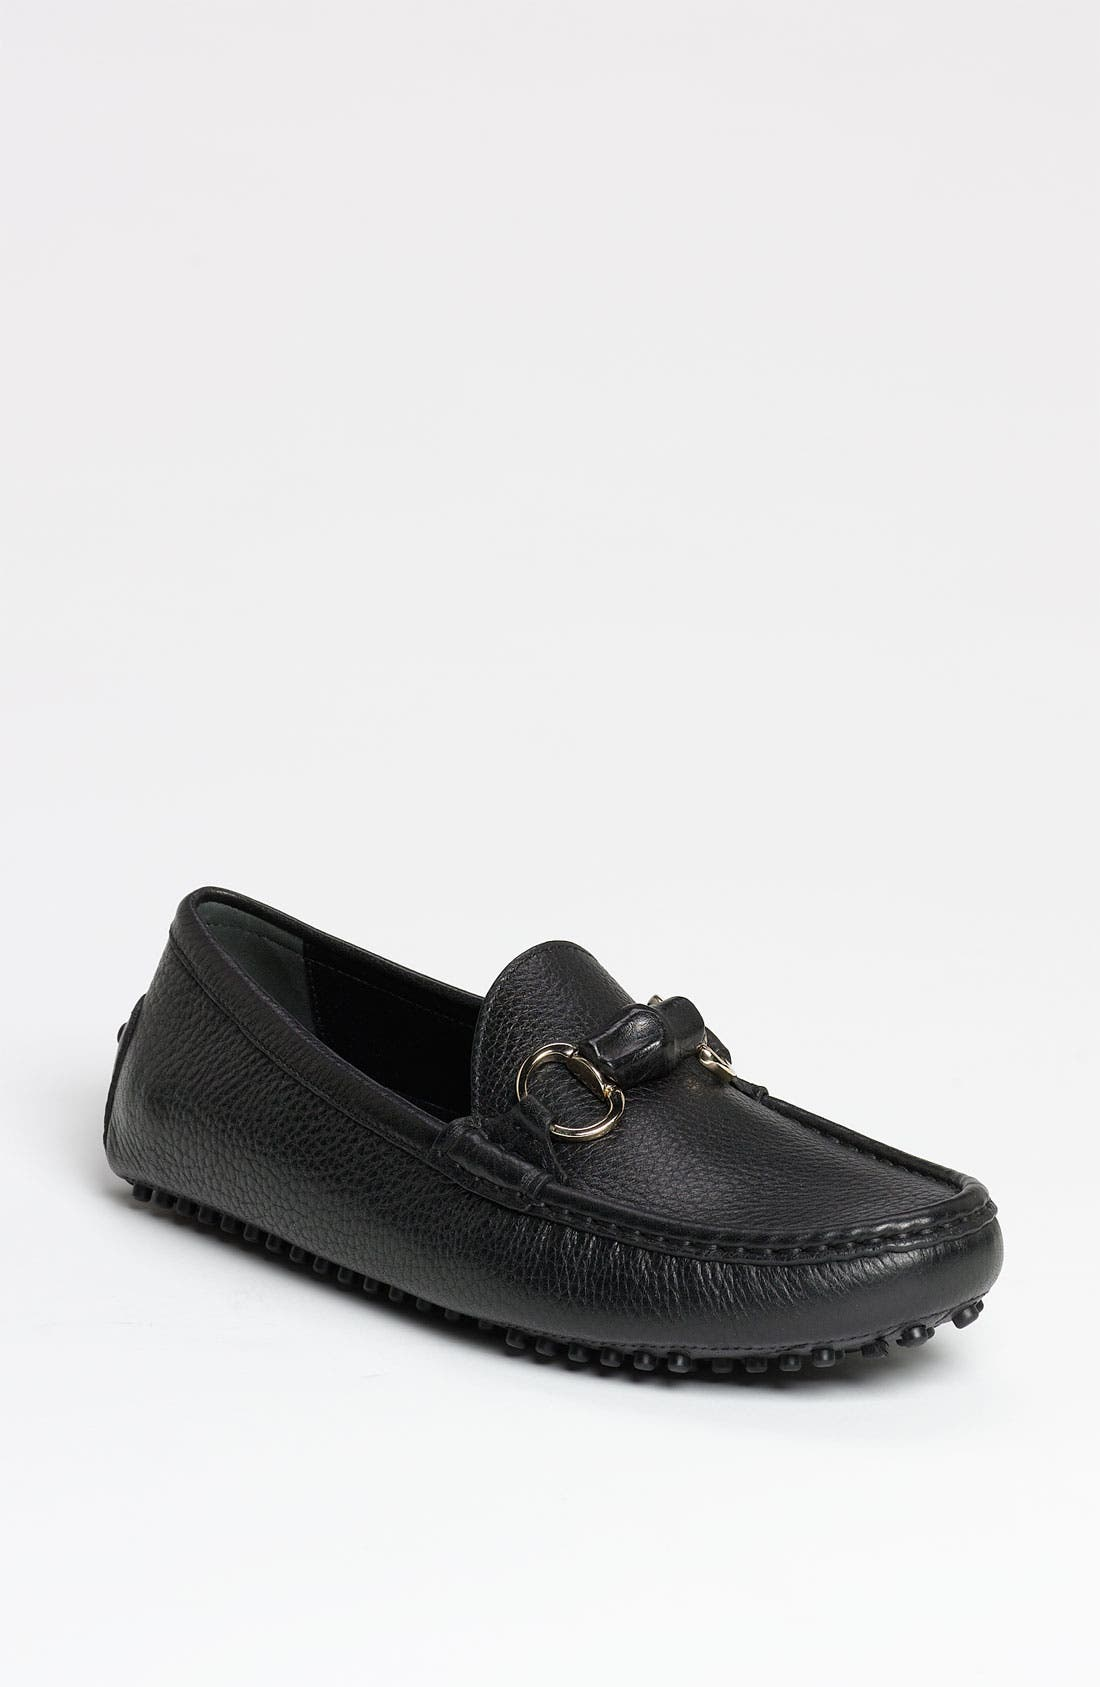 Main Image - Gucci 'Damo' Loafer